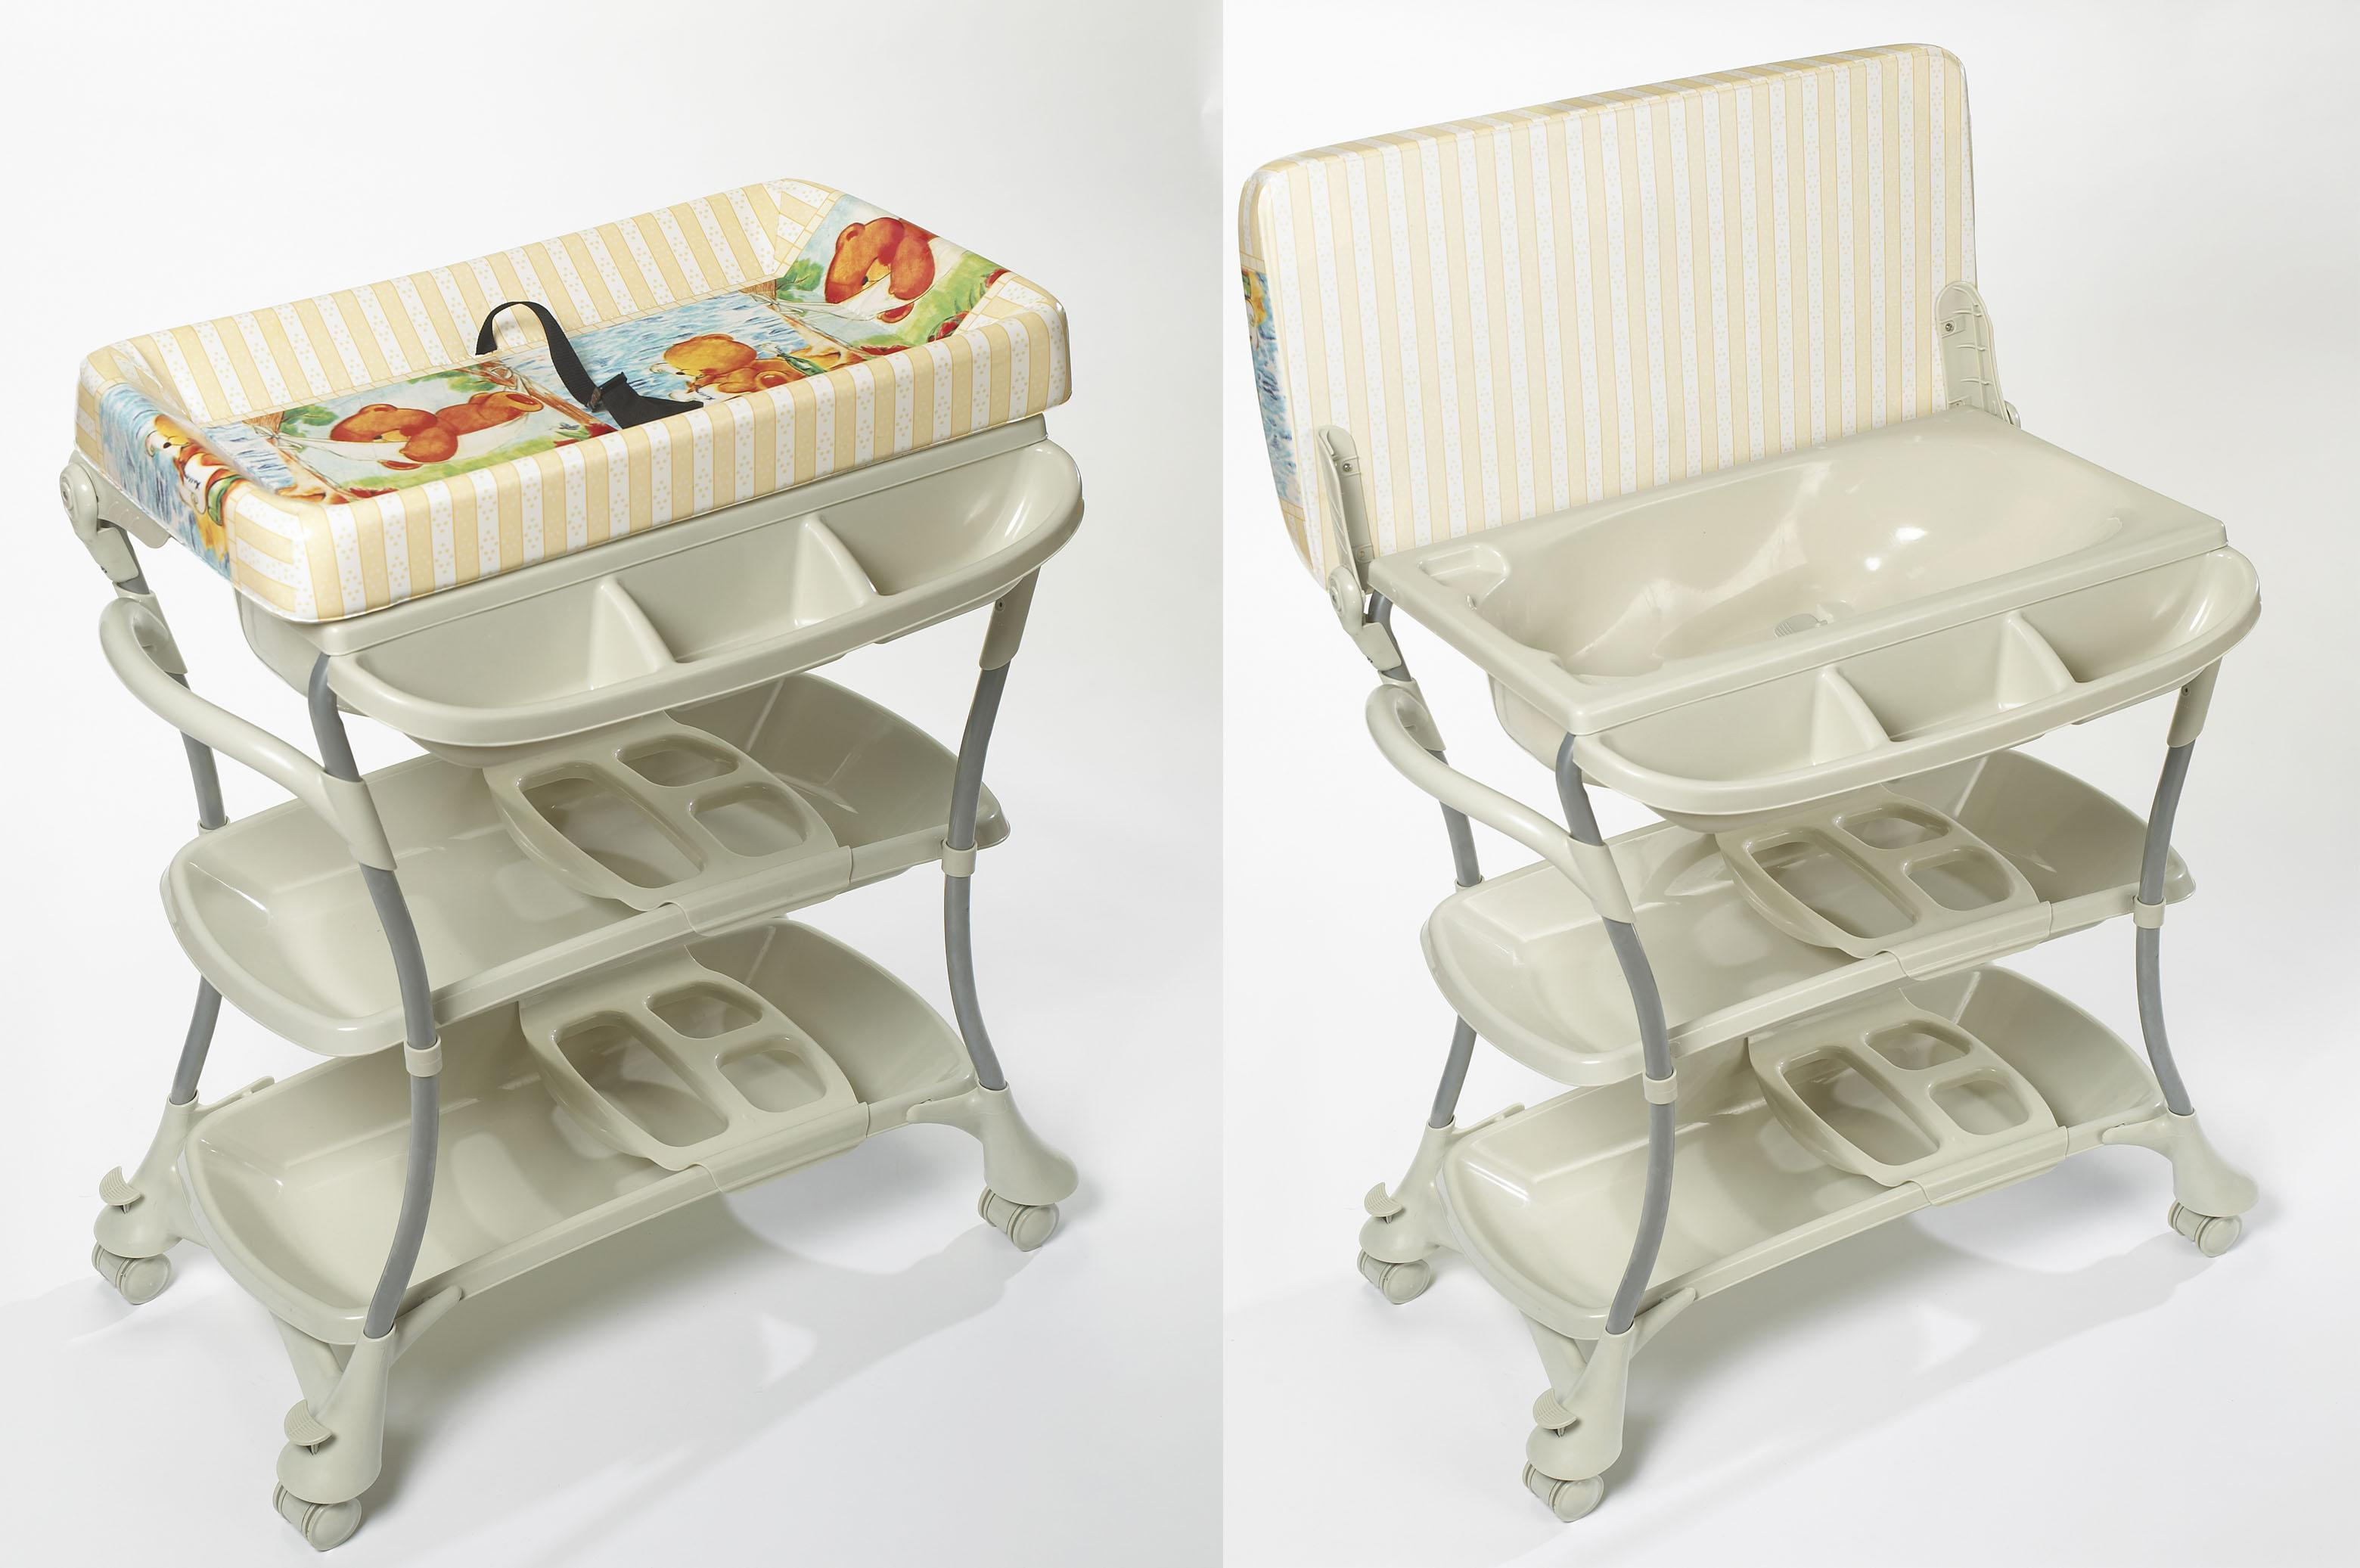 Euro Spa Baby Bath and Changing Table - Walmart.com